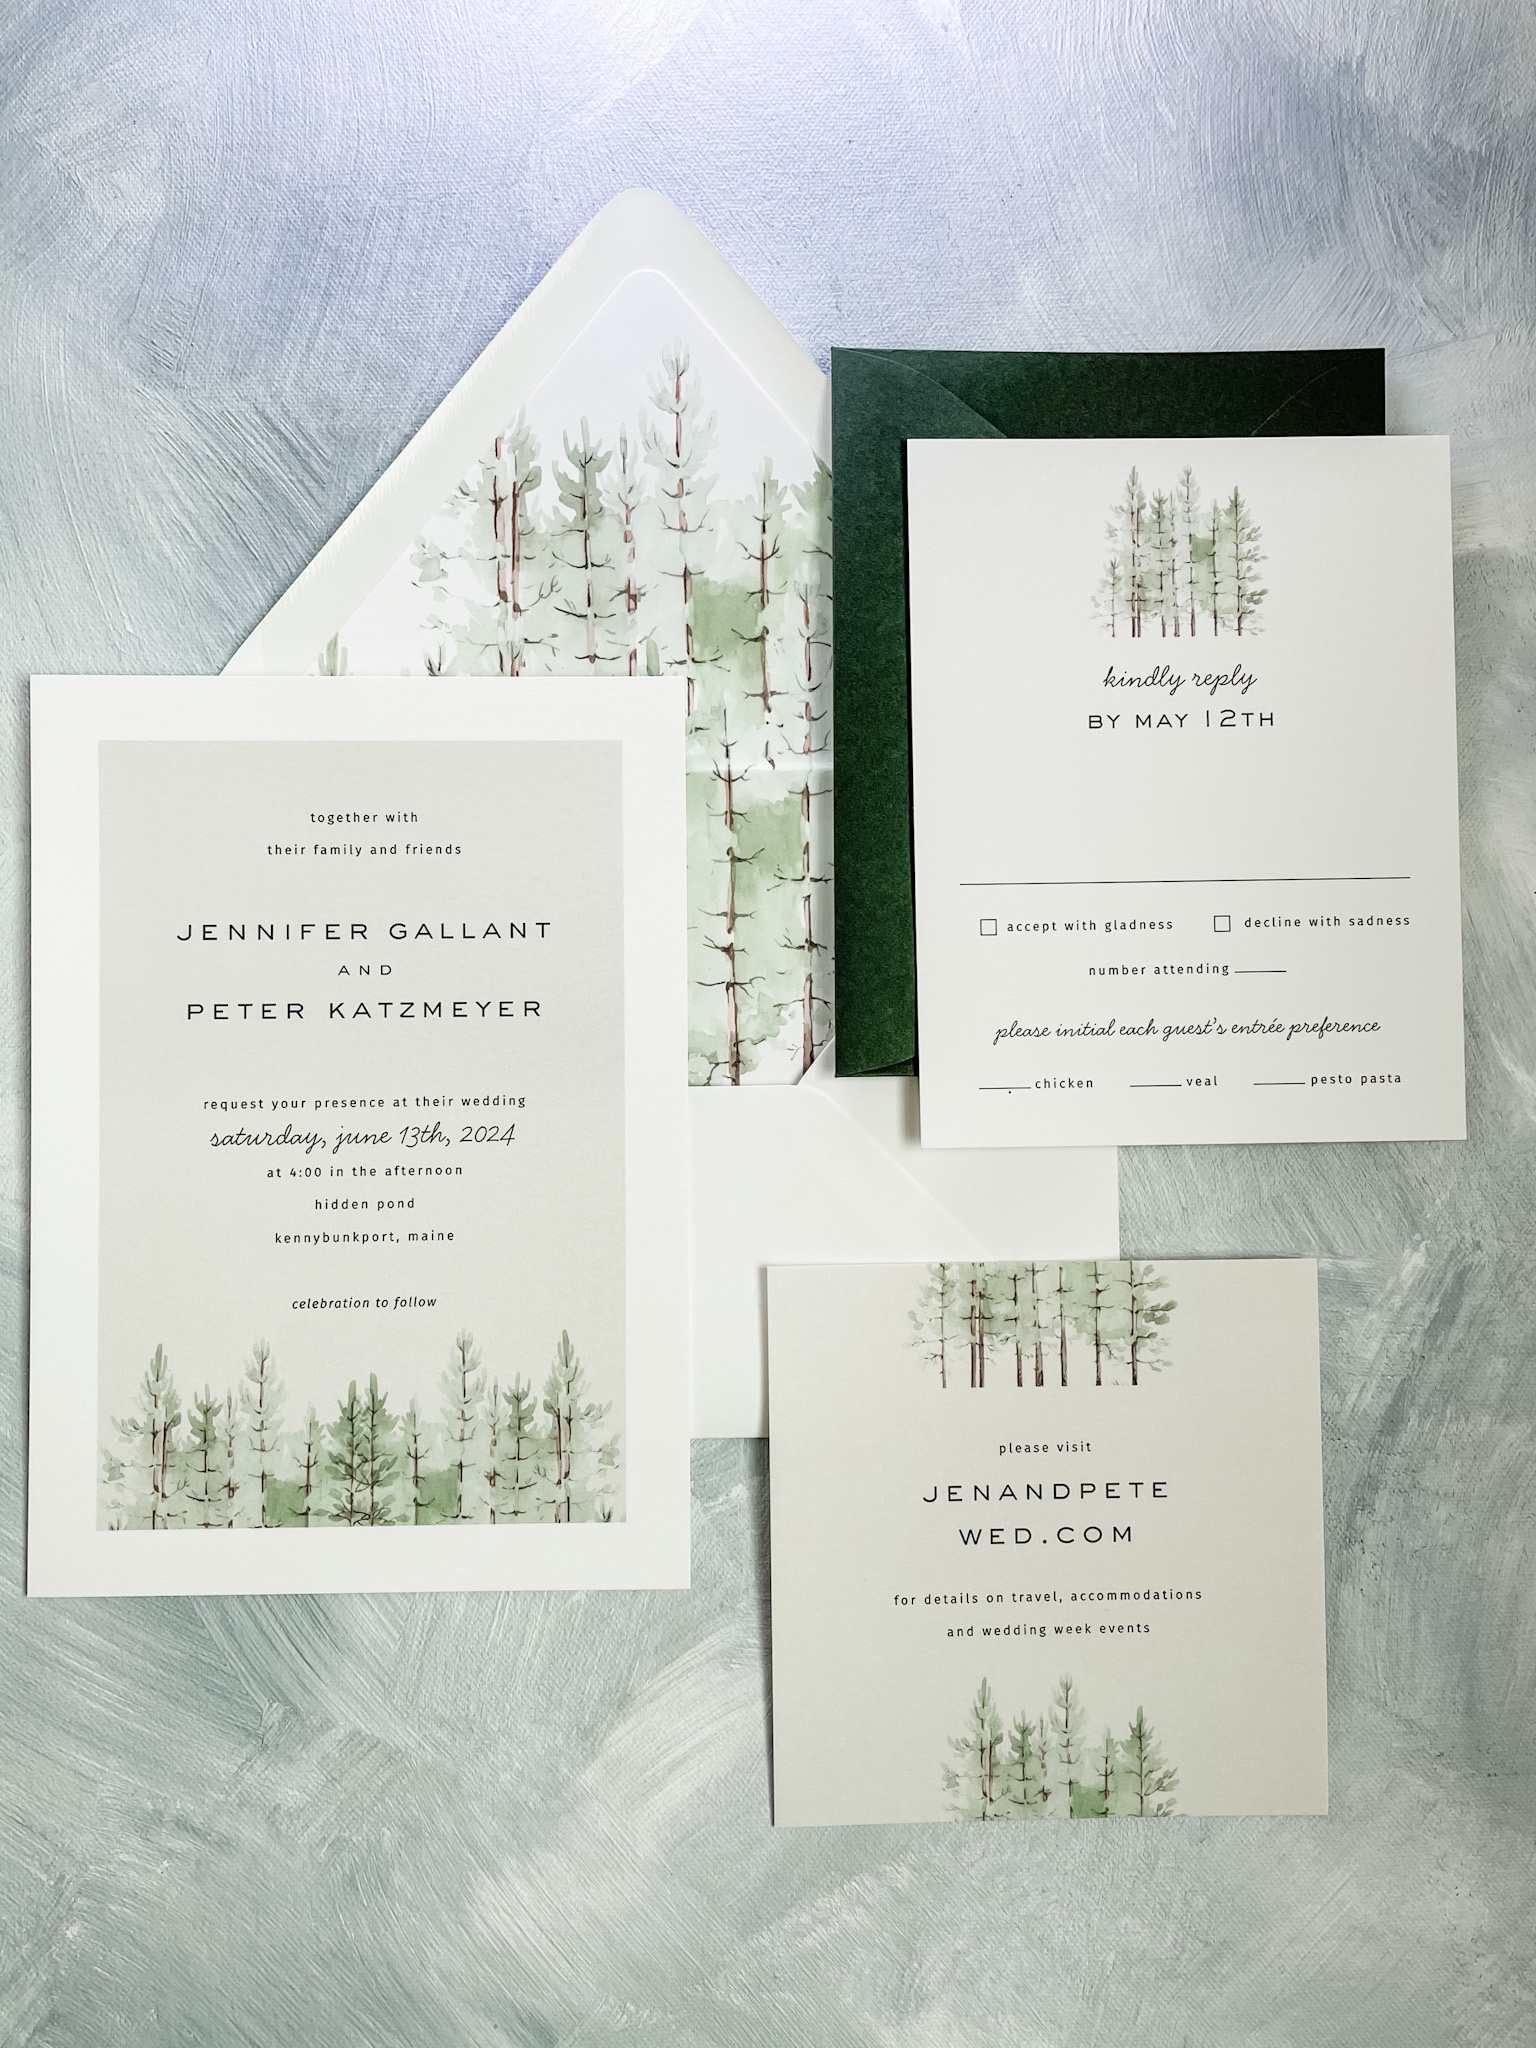 Woodland scene in watercolor accents this beautiful flat printed wedding invitation available at Staccato in Fairfax, VA.